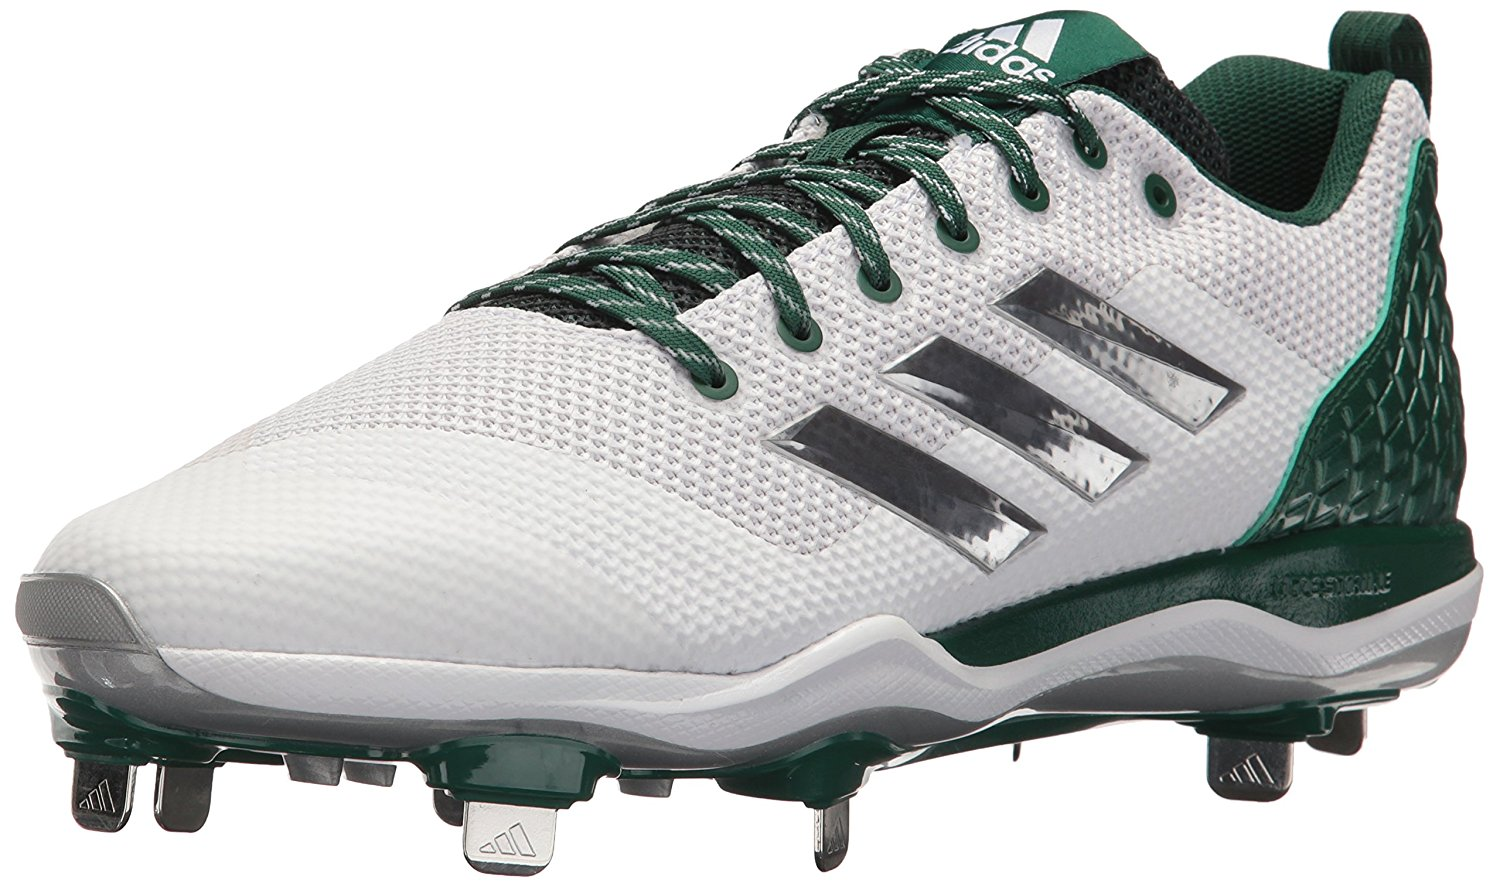 Adidas Mens Poweralley 5 Fabric Low Top Lace Up Baseball Shoes